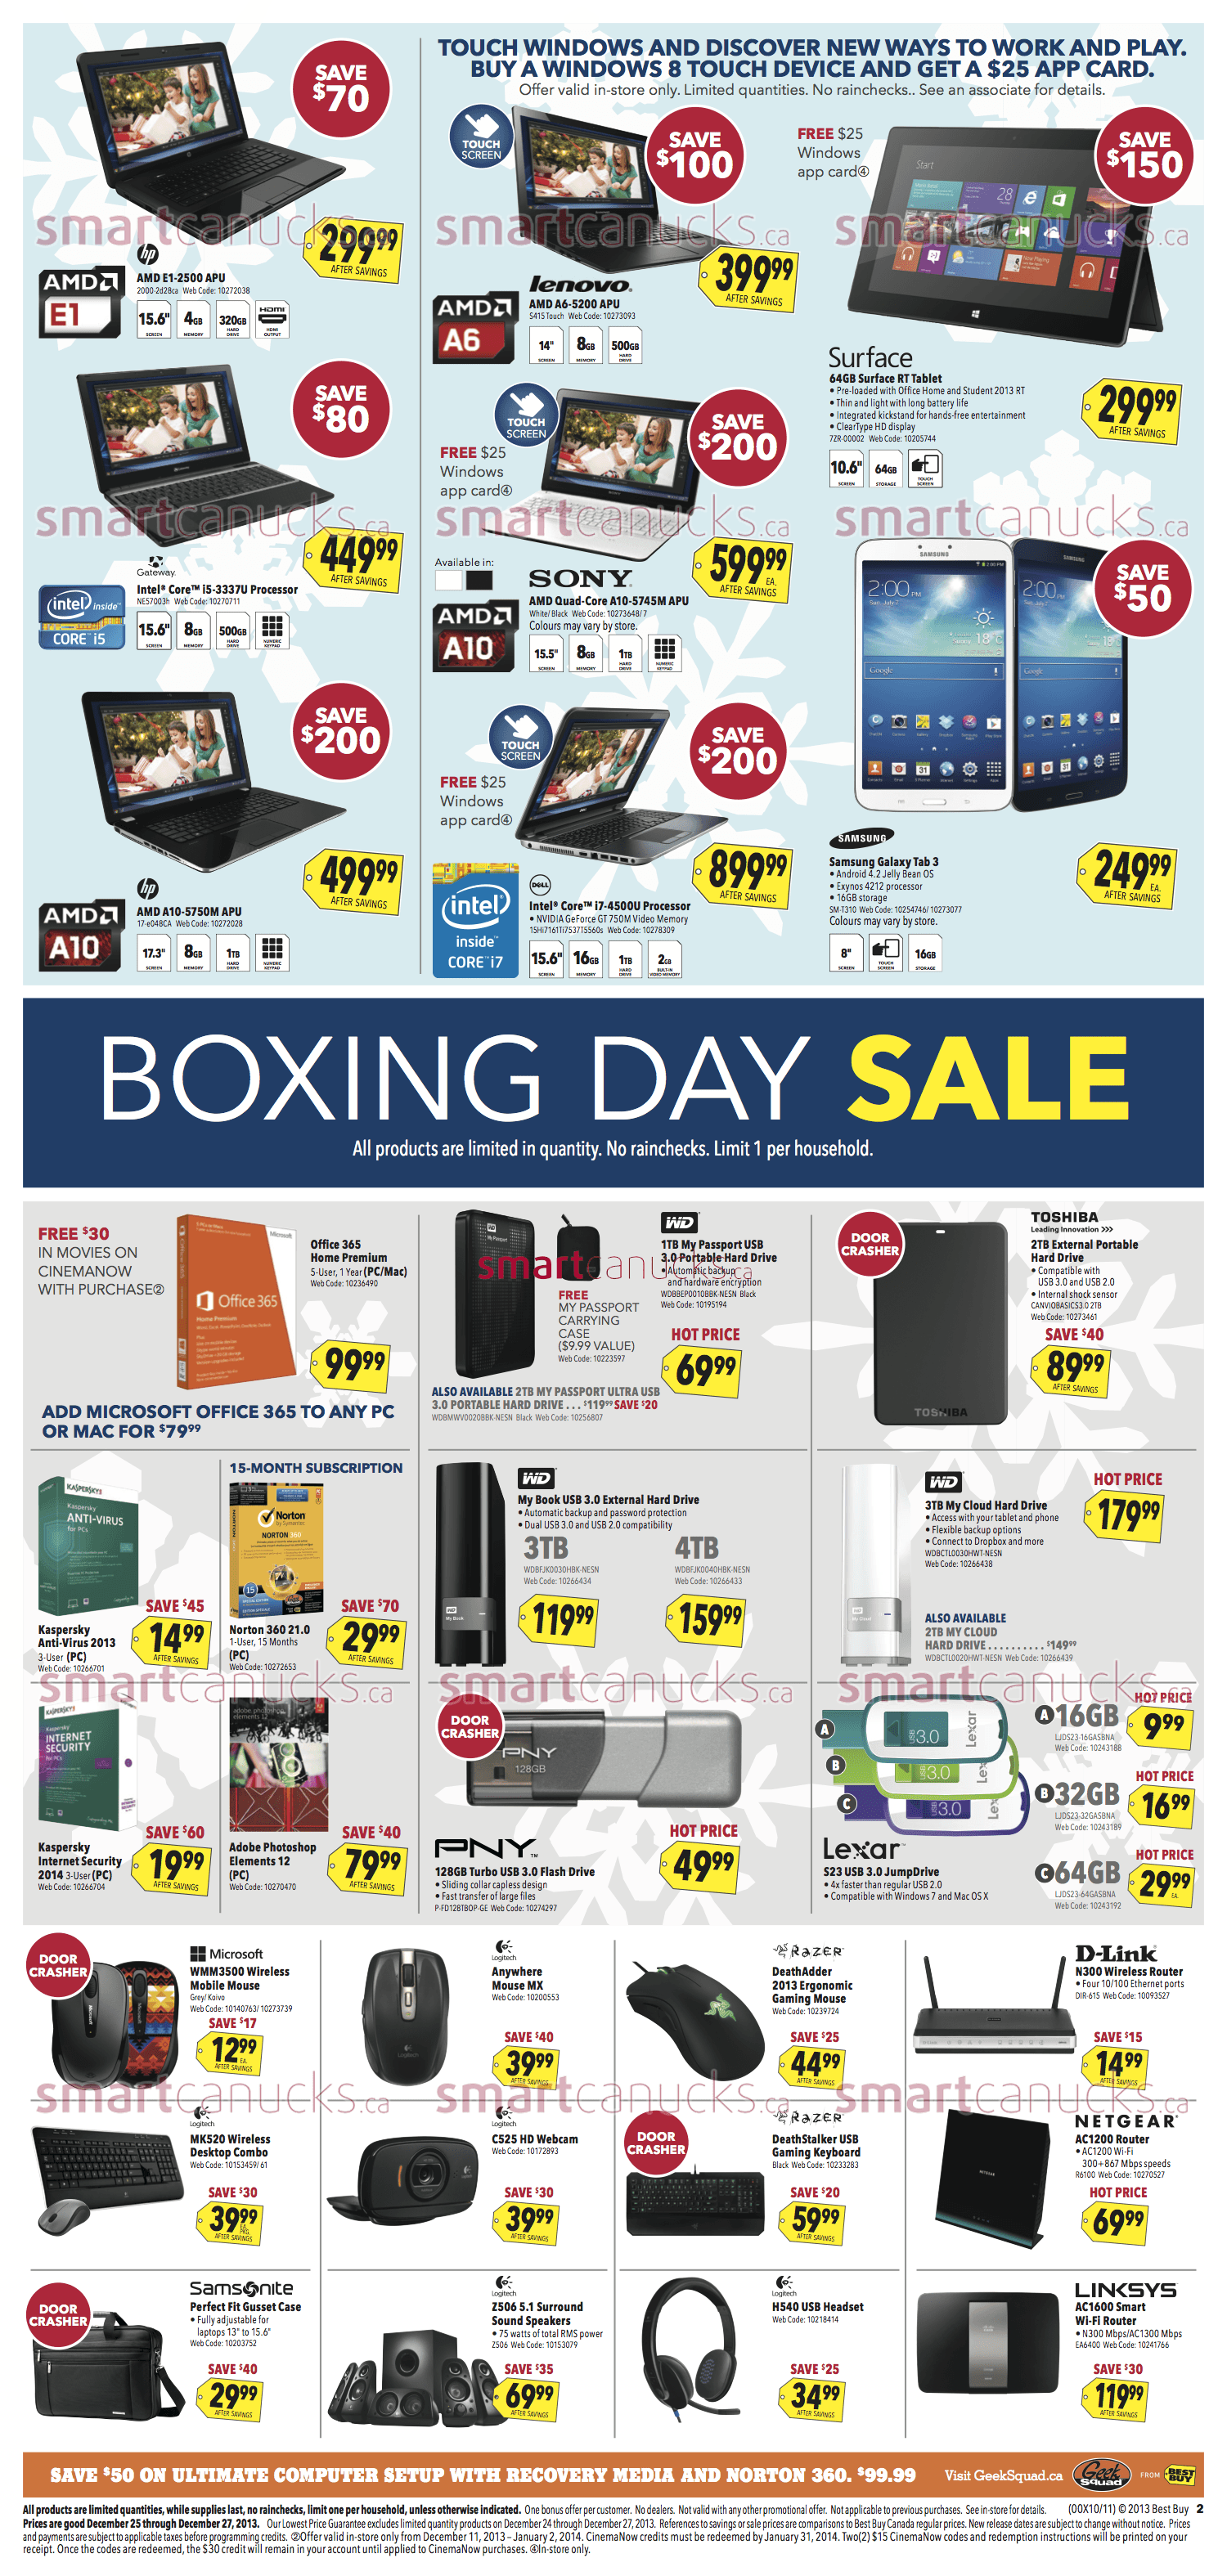 Best Buy Canada Boxing Day Flyer 2013